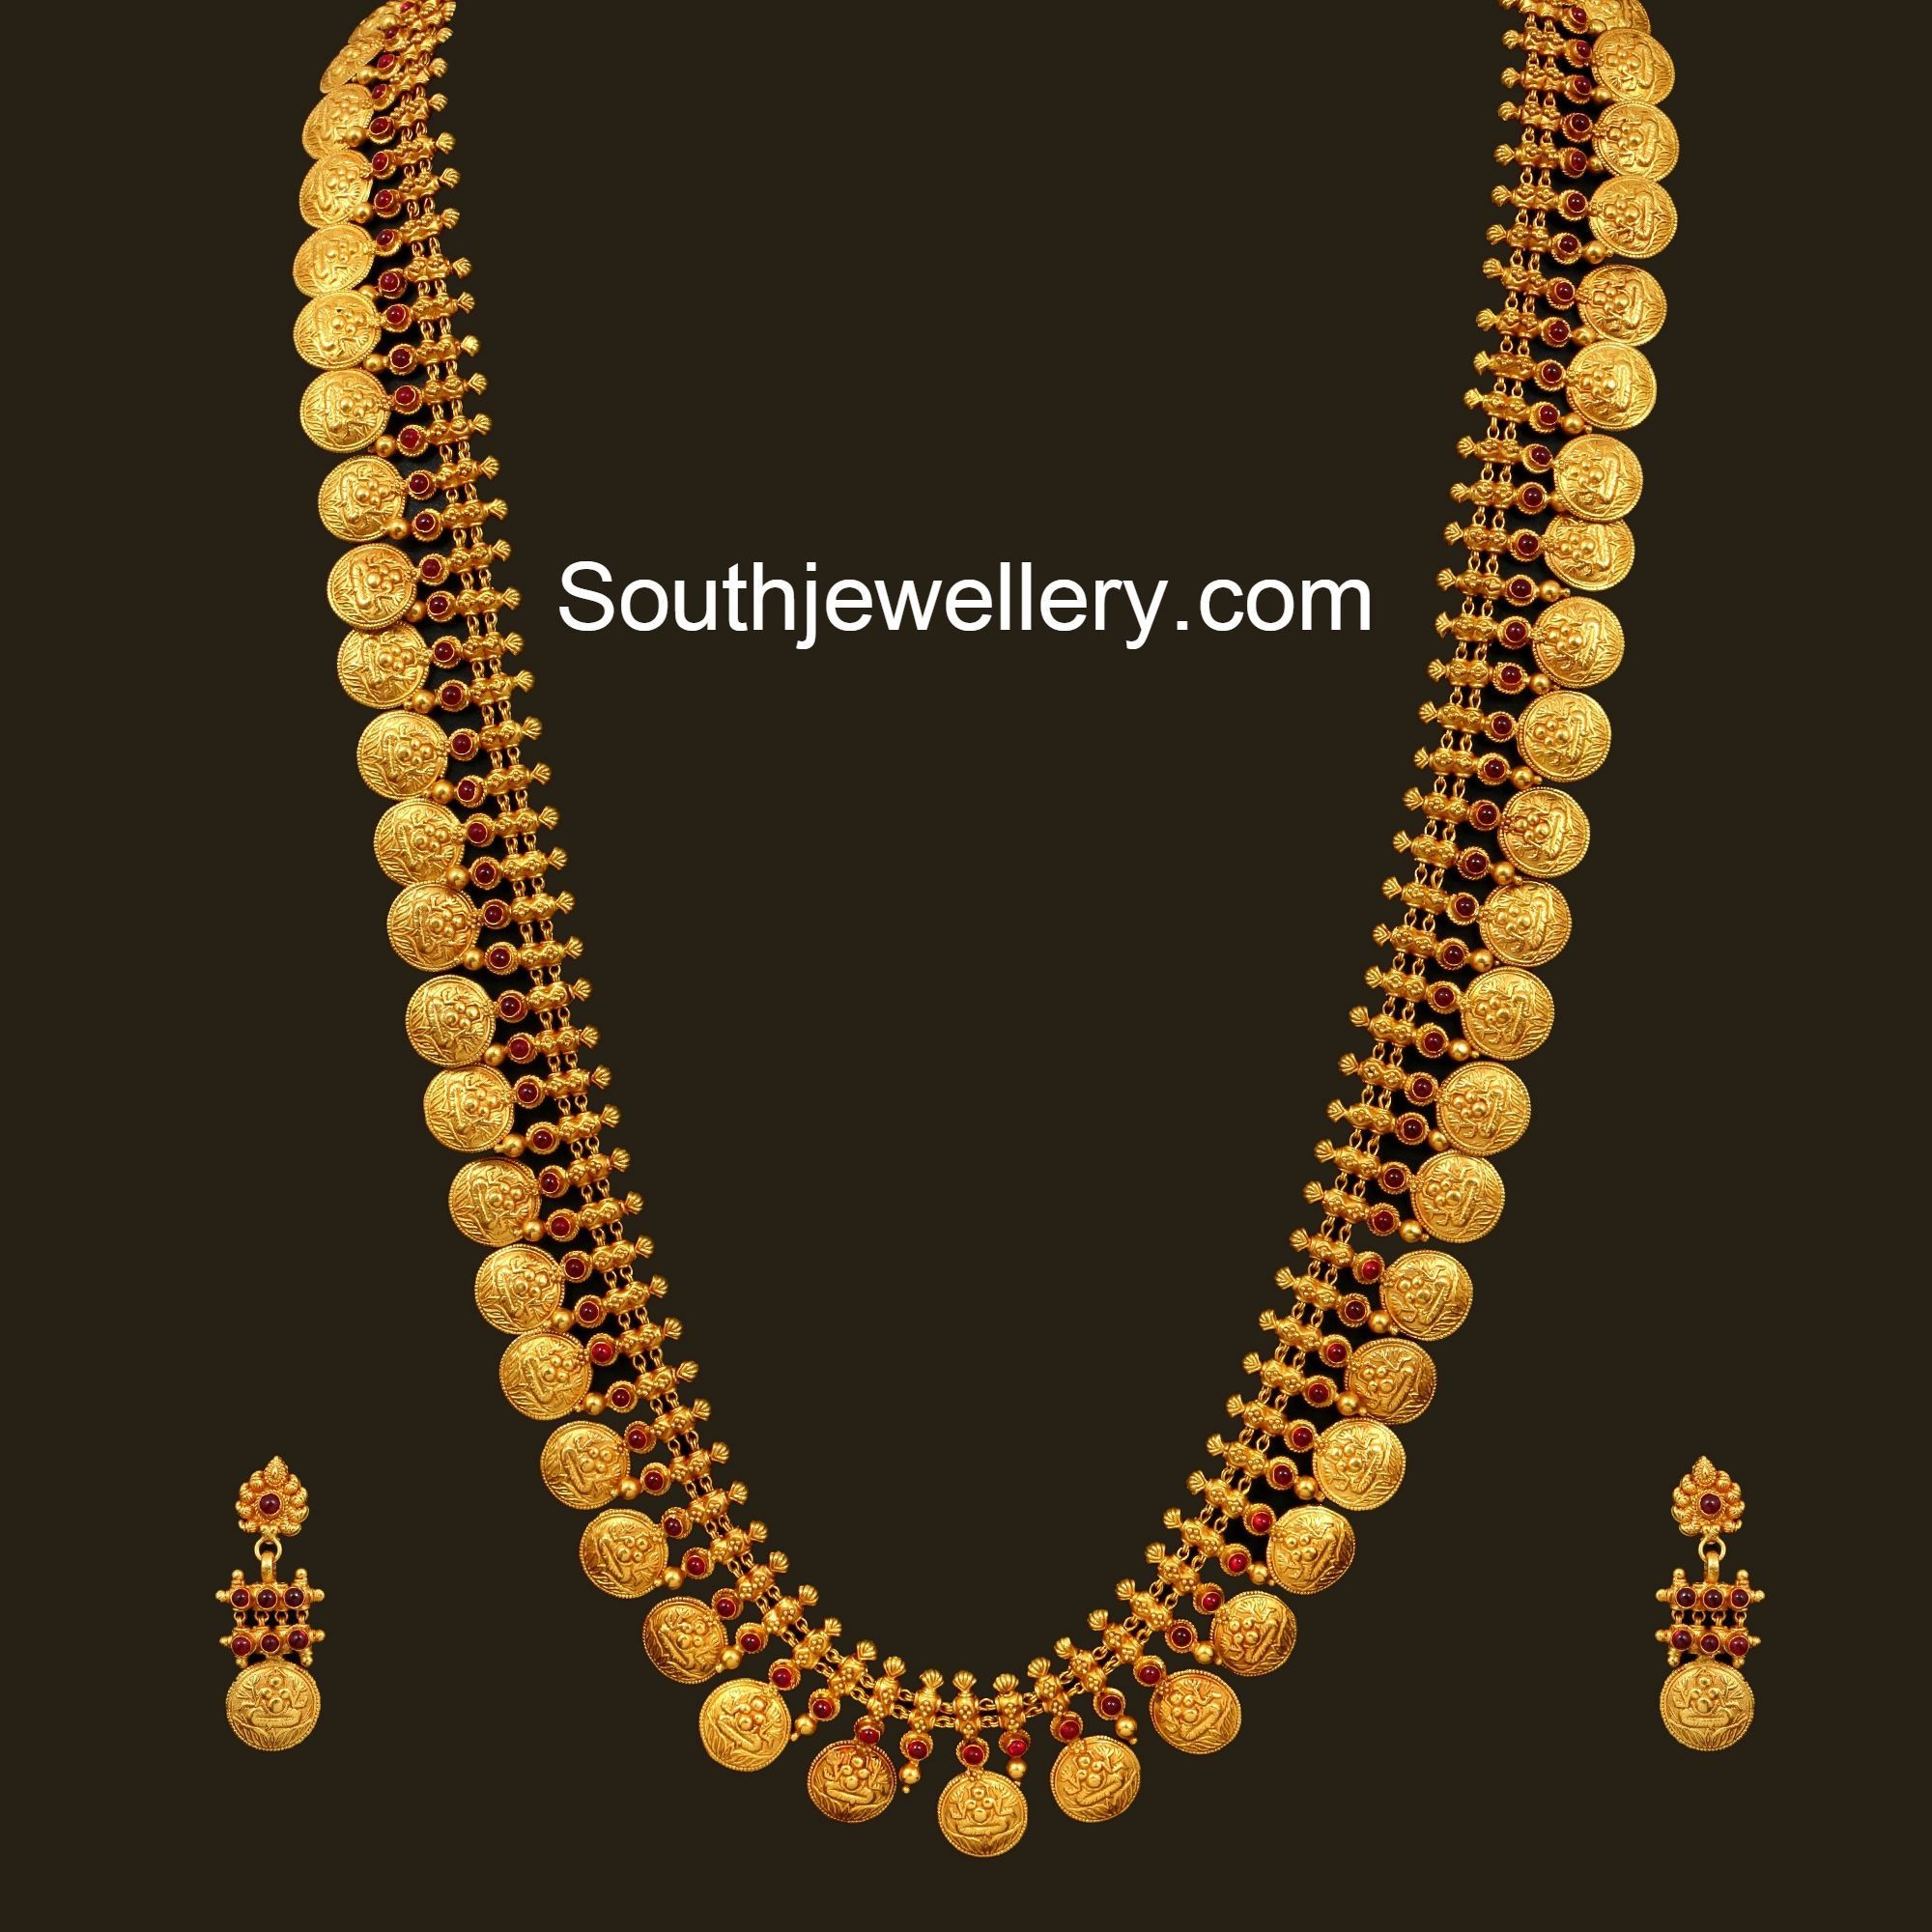 Pai jewellers gold necklace designs latest indian jewellery designs - Jewellery Designs Page 5 Of 949 Latest Indian Jewellery Designs 2017 22 Carat Gold Jewellery